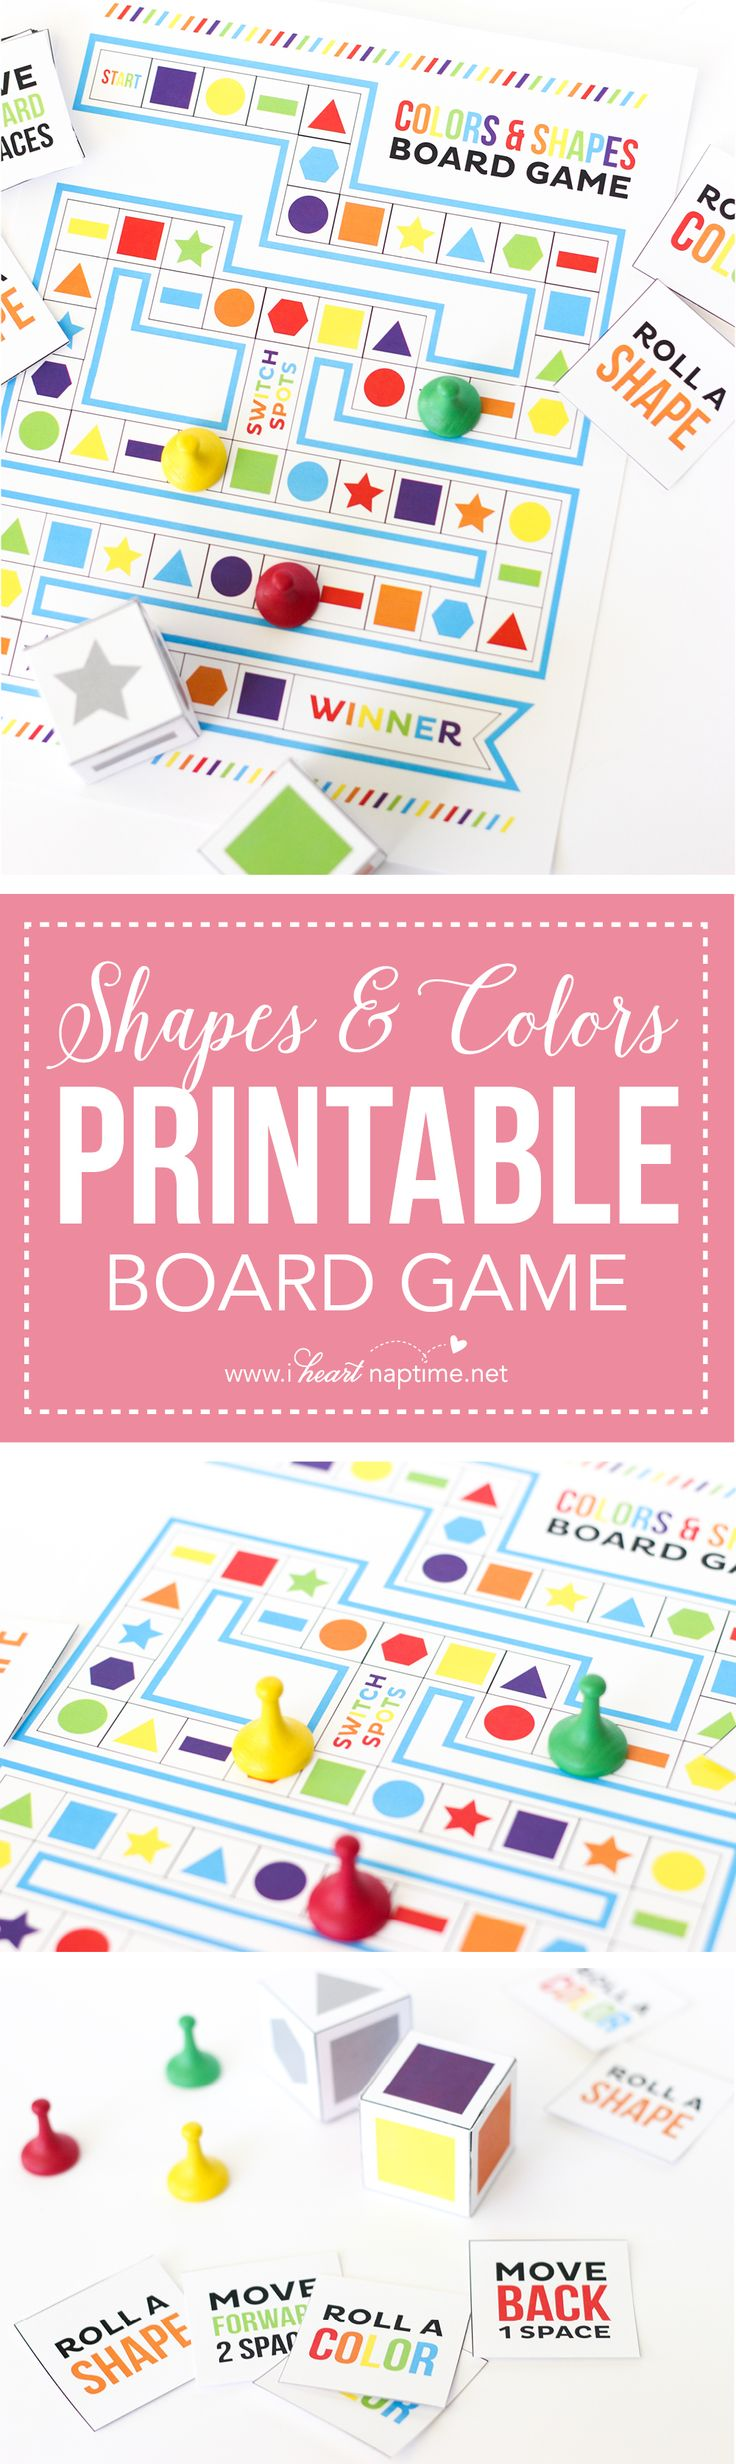 Shapes and Colors Printable Board Game - the perfect summer boredom buster! Easy to print at home, and fun for the whole family!